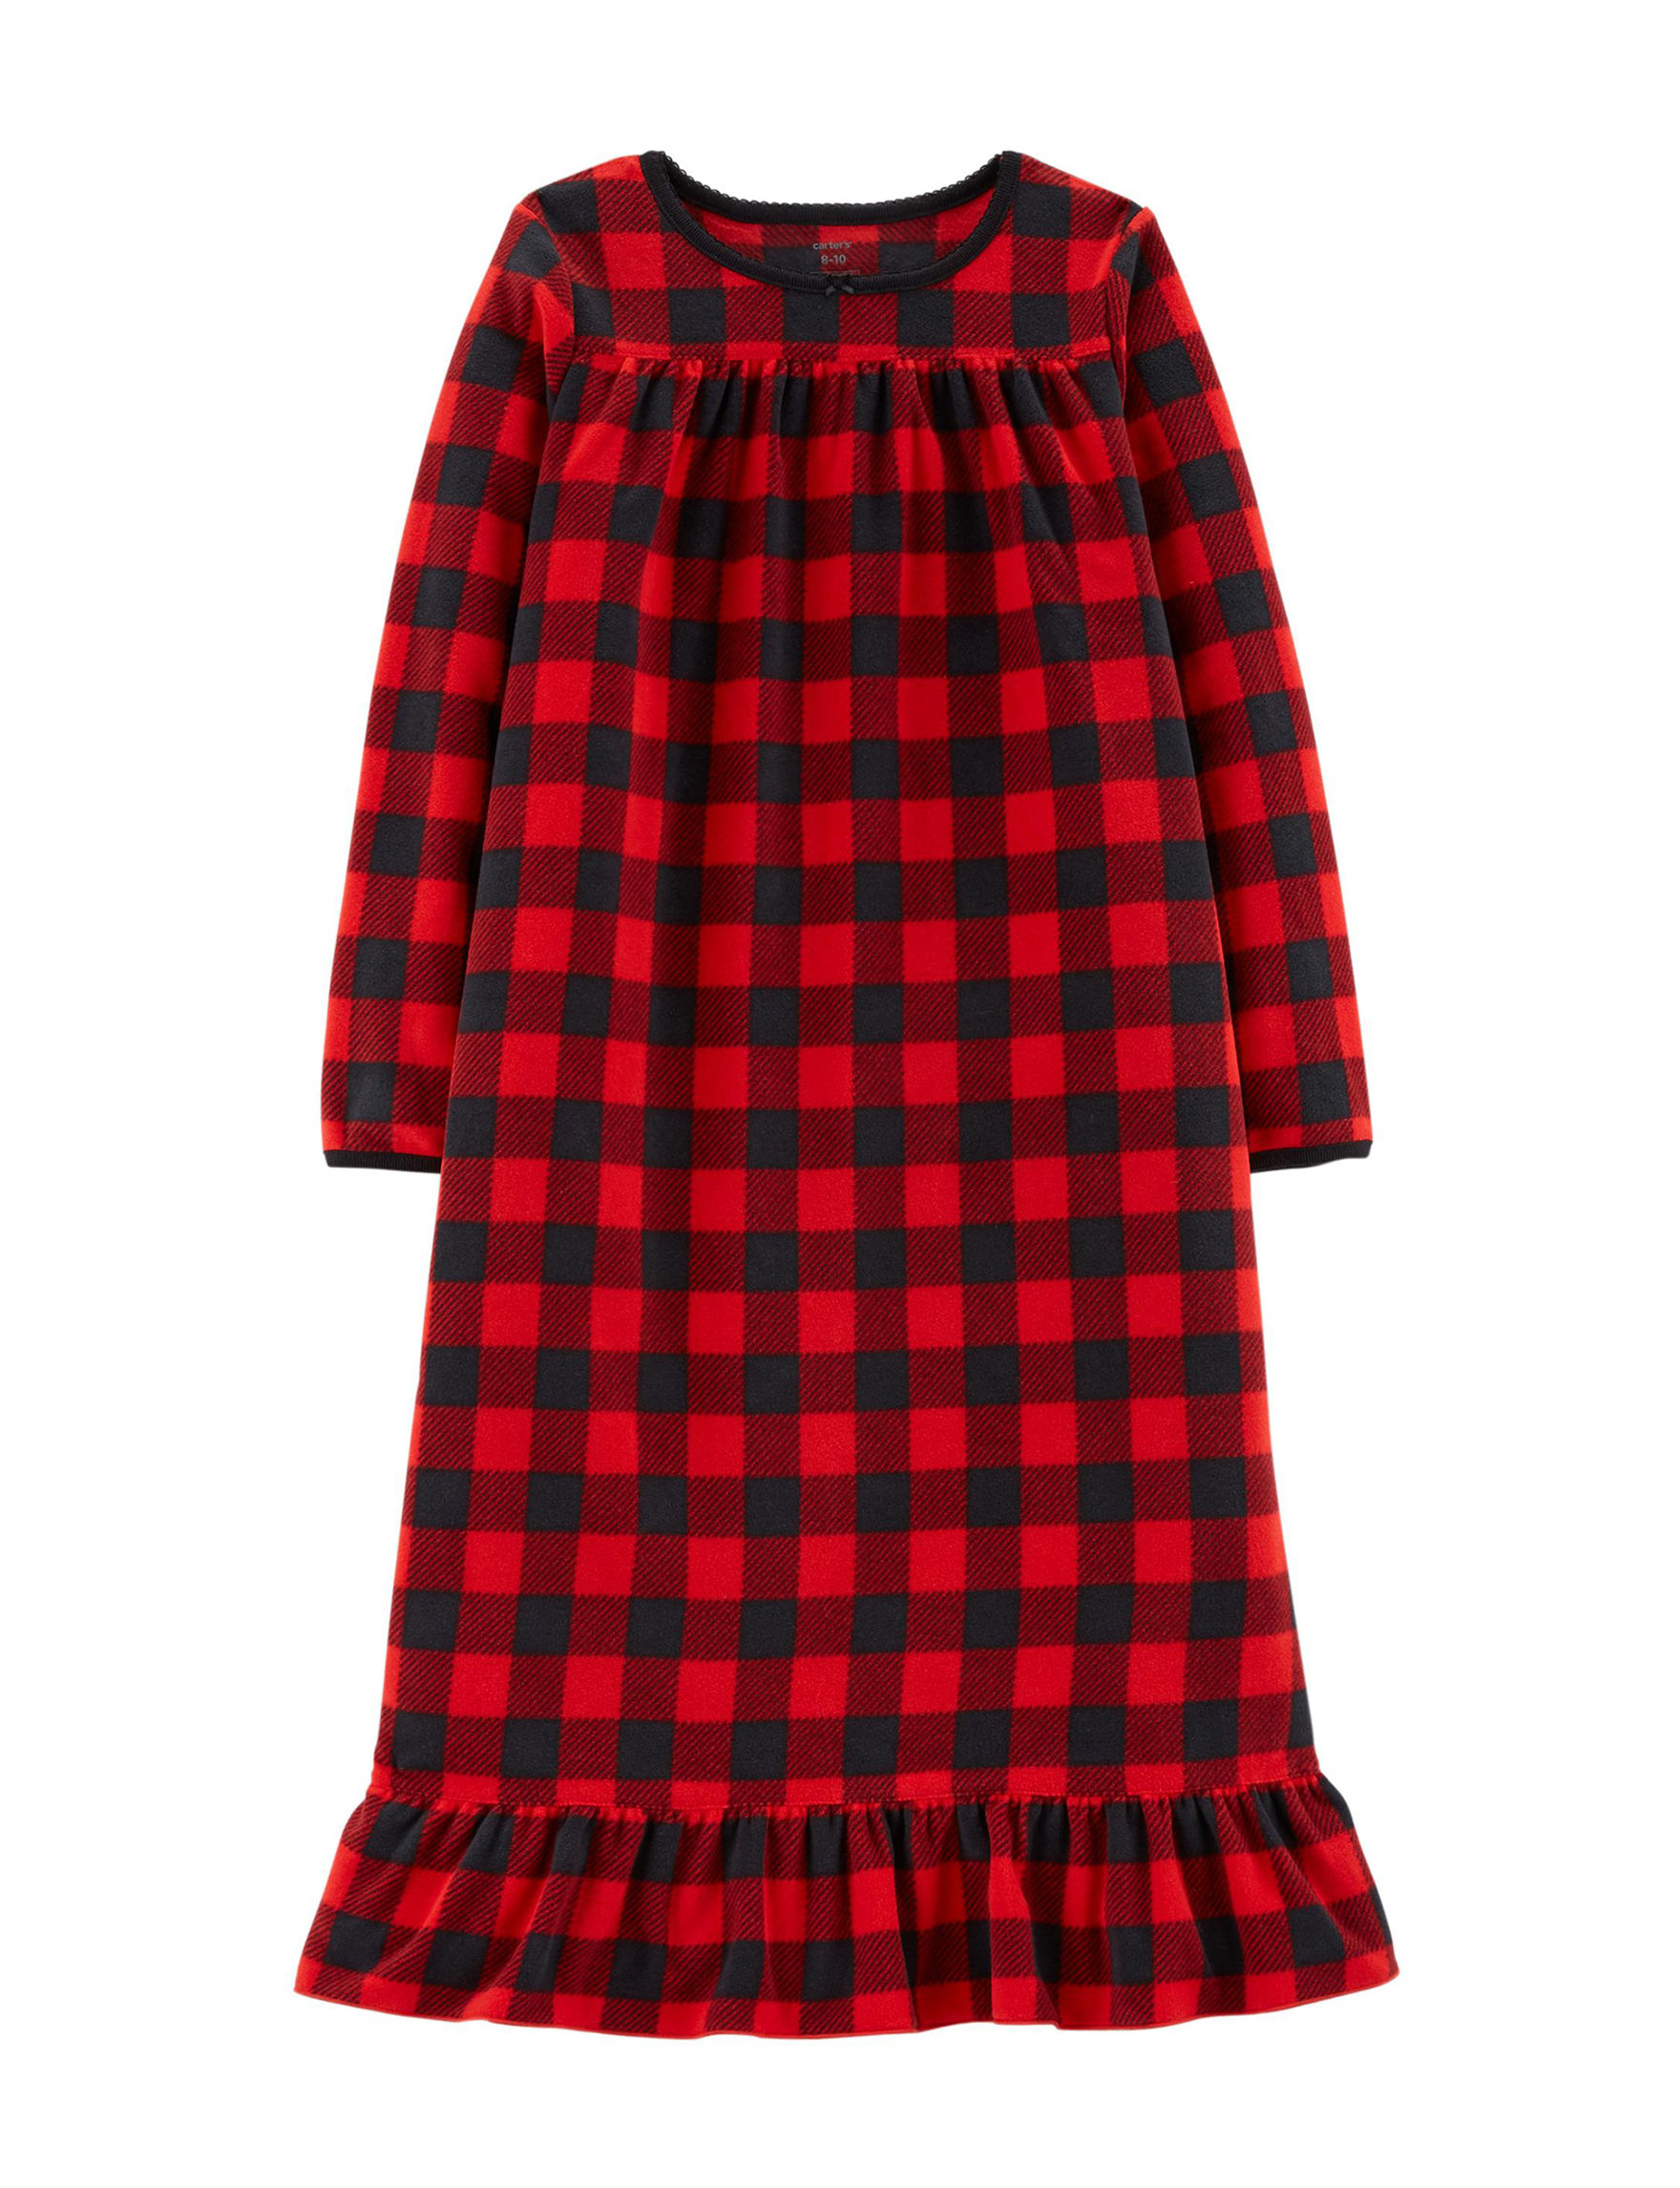 Carter's Red Plaid Nightgowns & Sleep Shirts